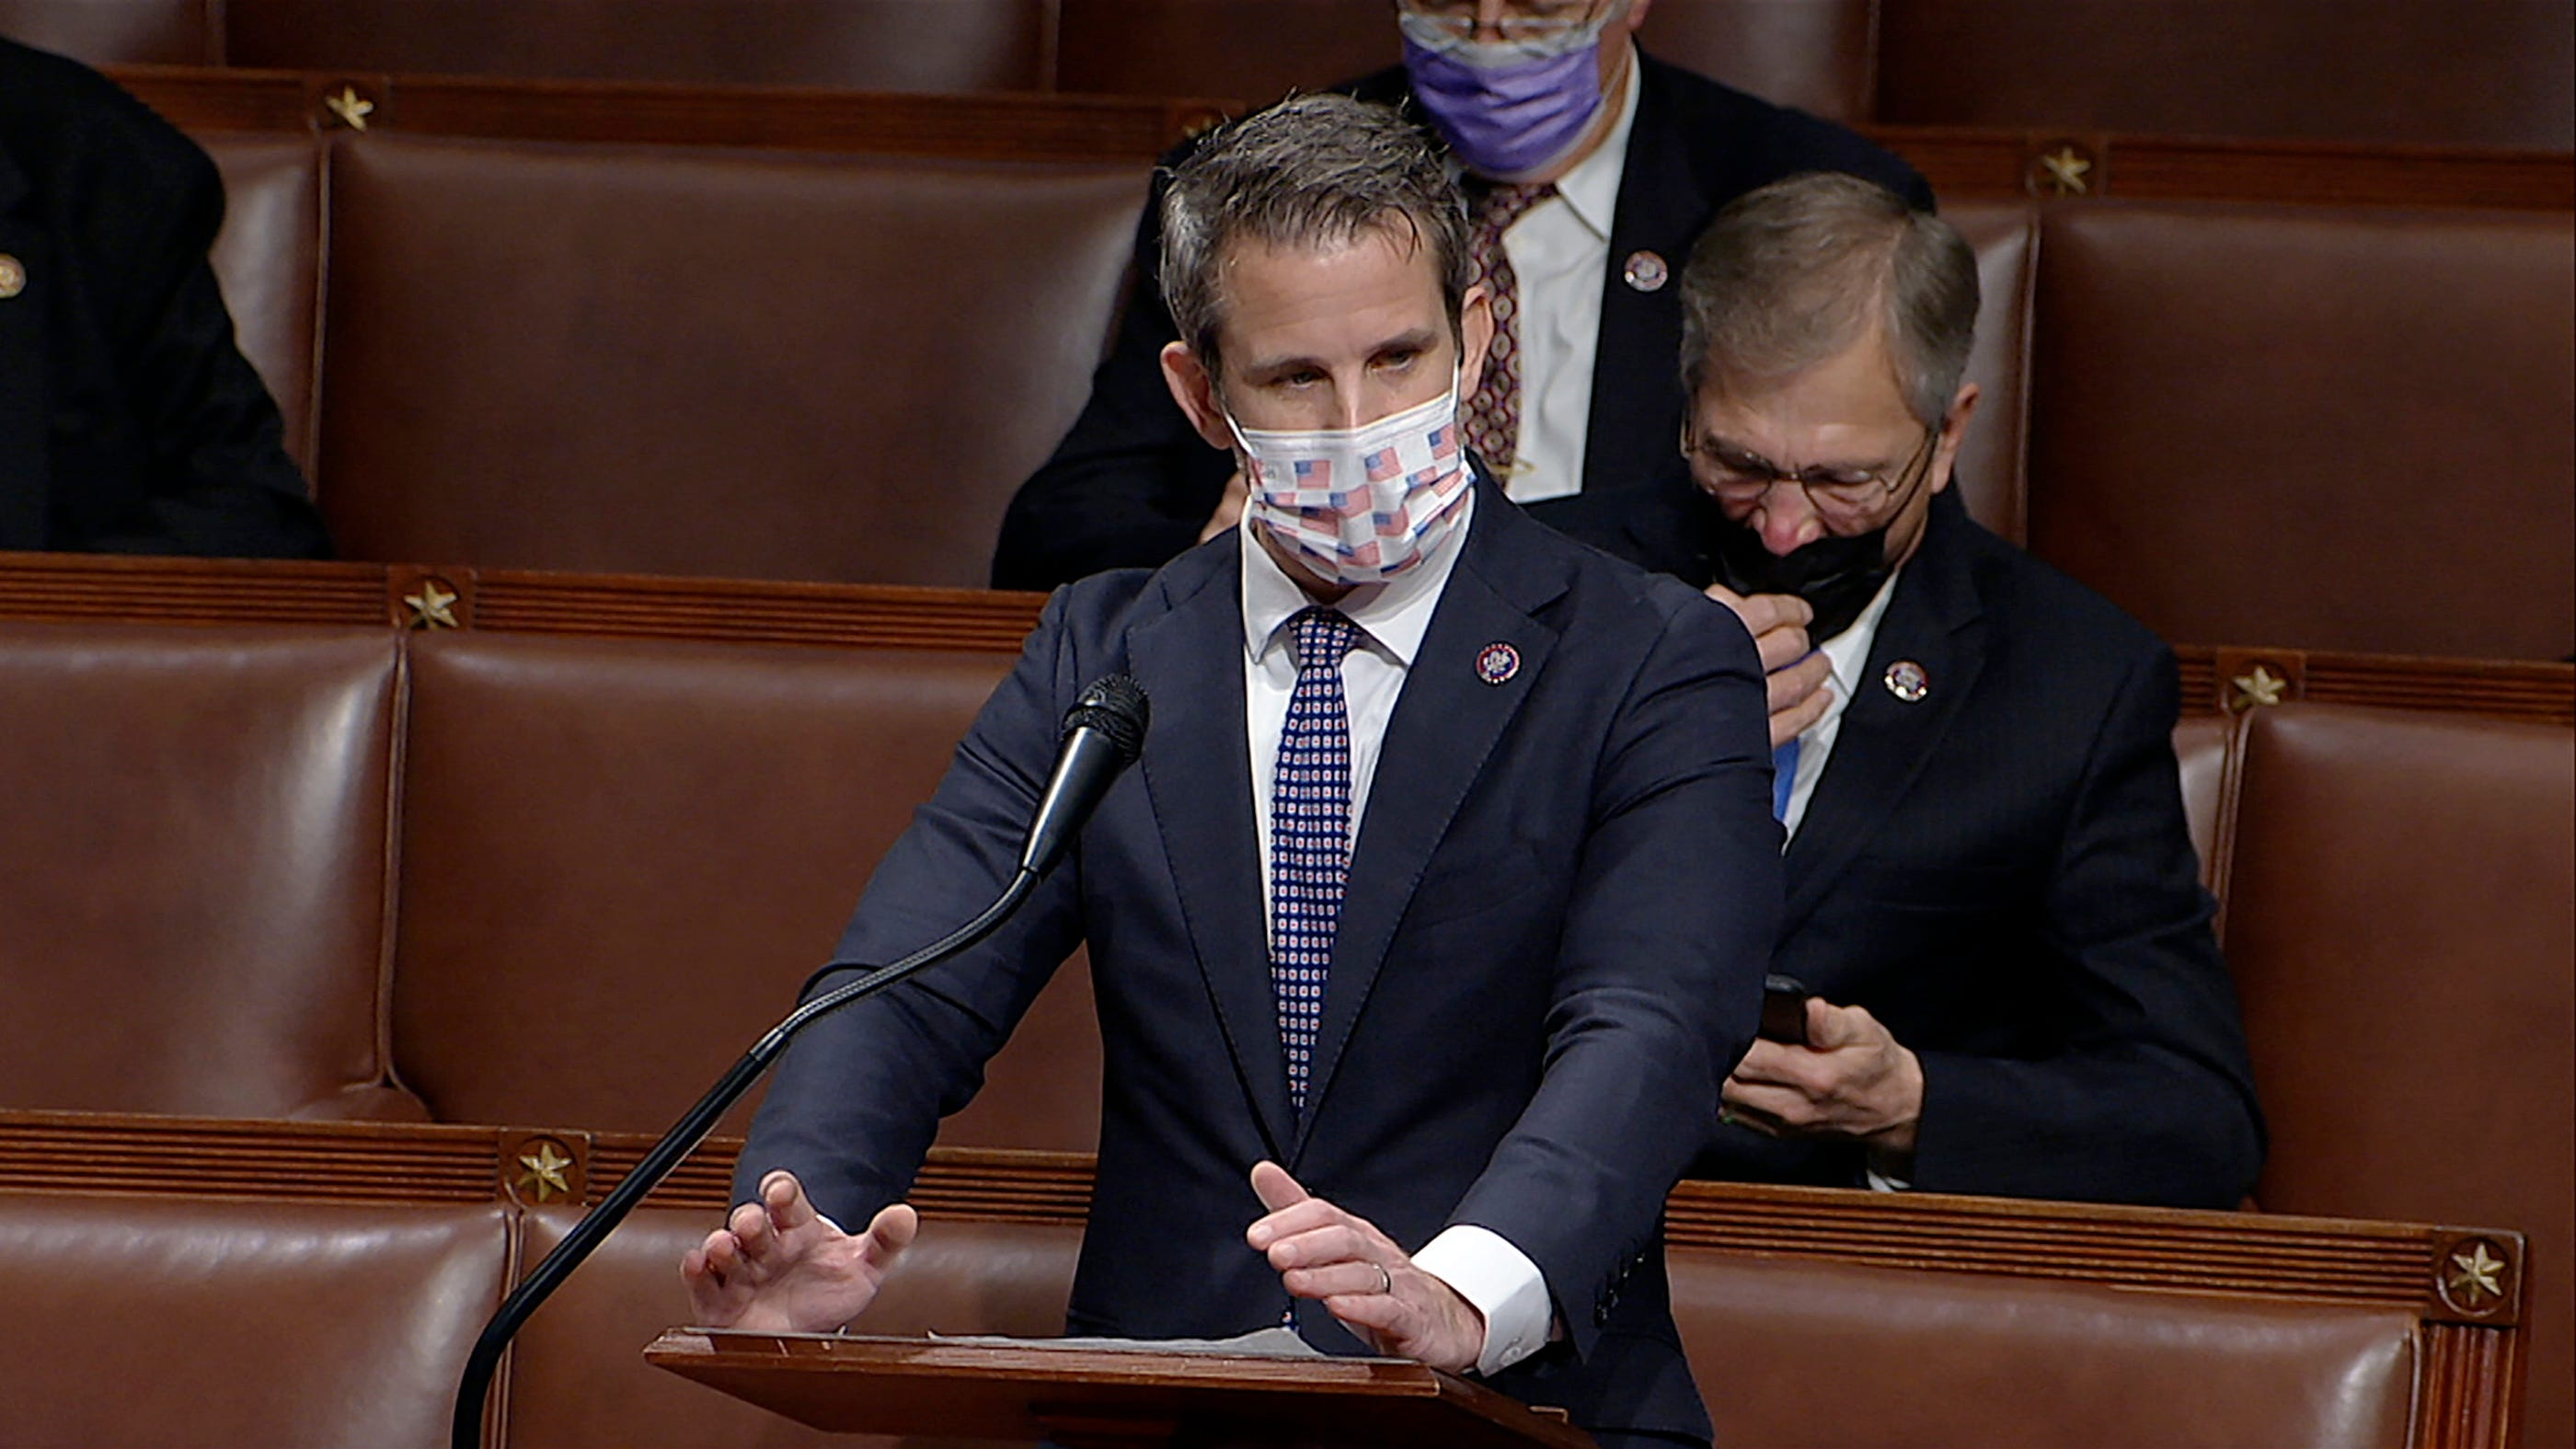 GOP Rep. Kinzinger says he's not afraid of backlash after joining Jan. 6 committee at Pelosi's request